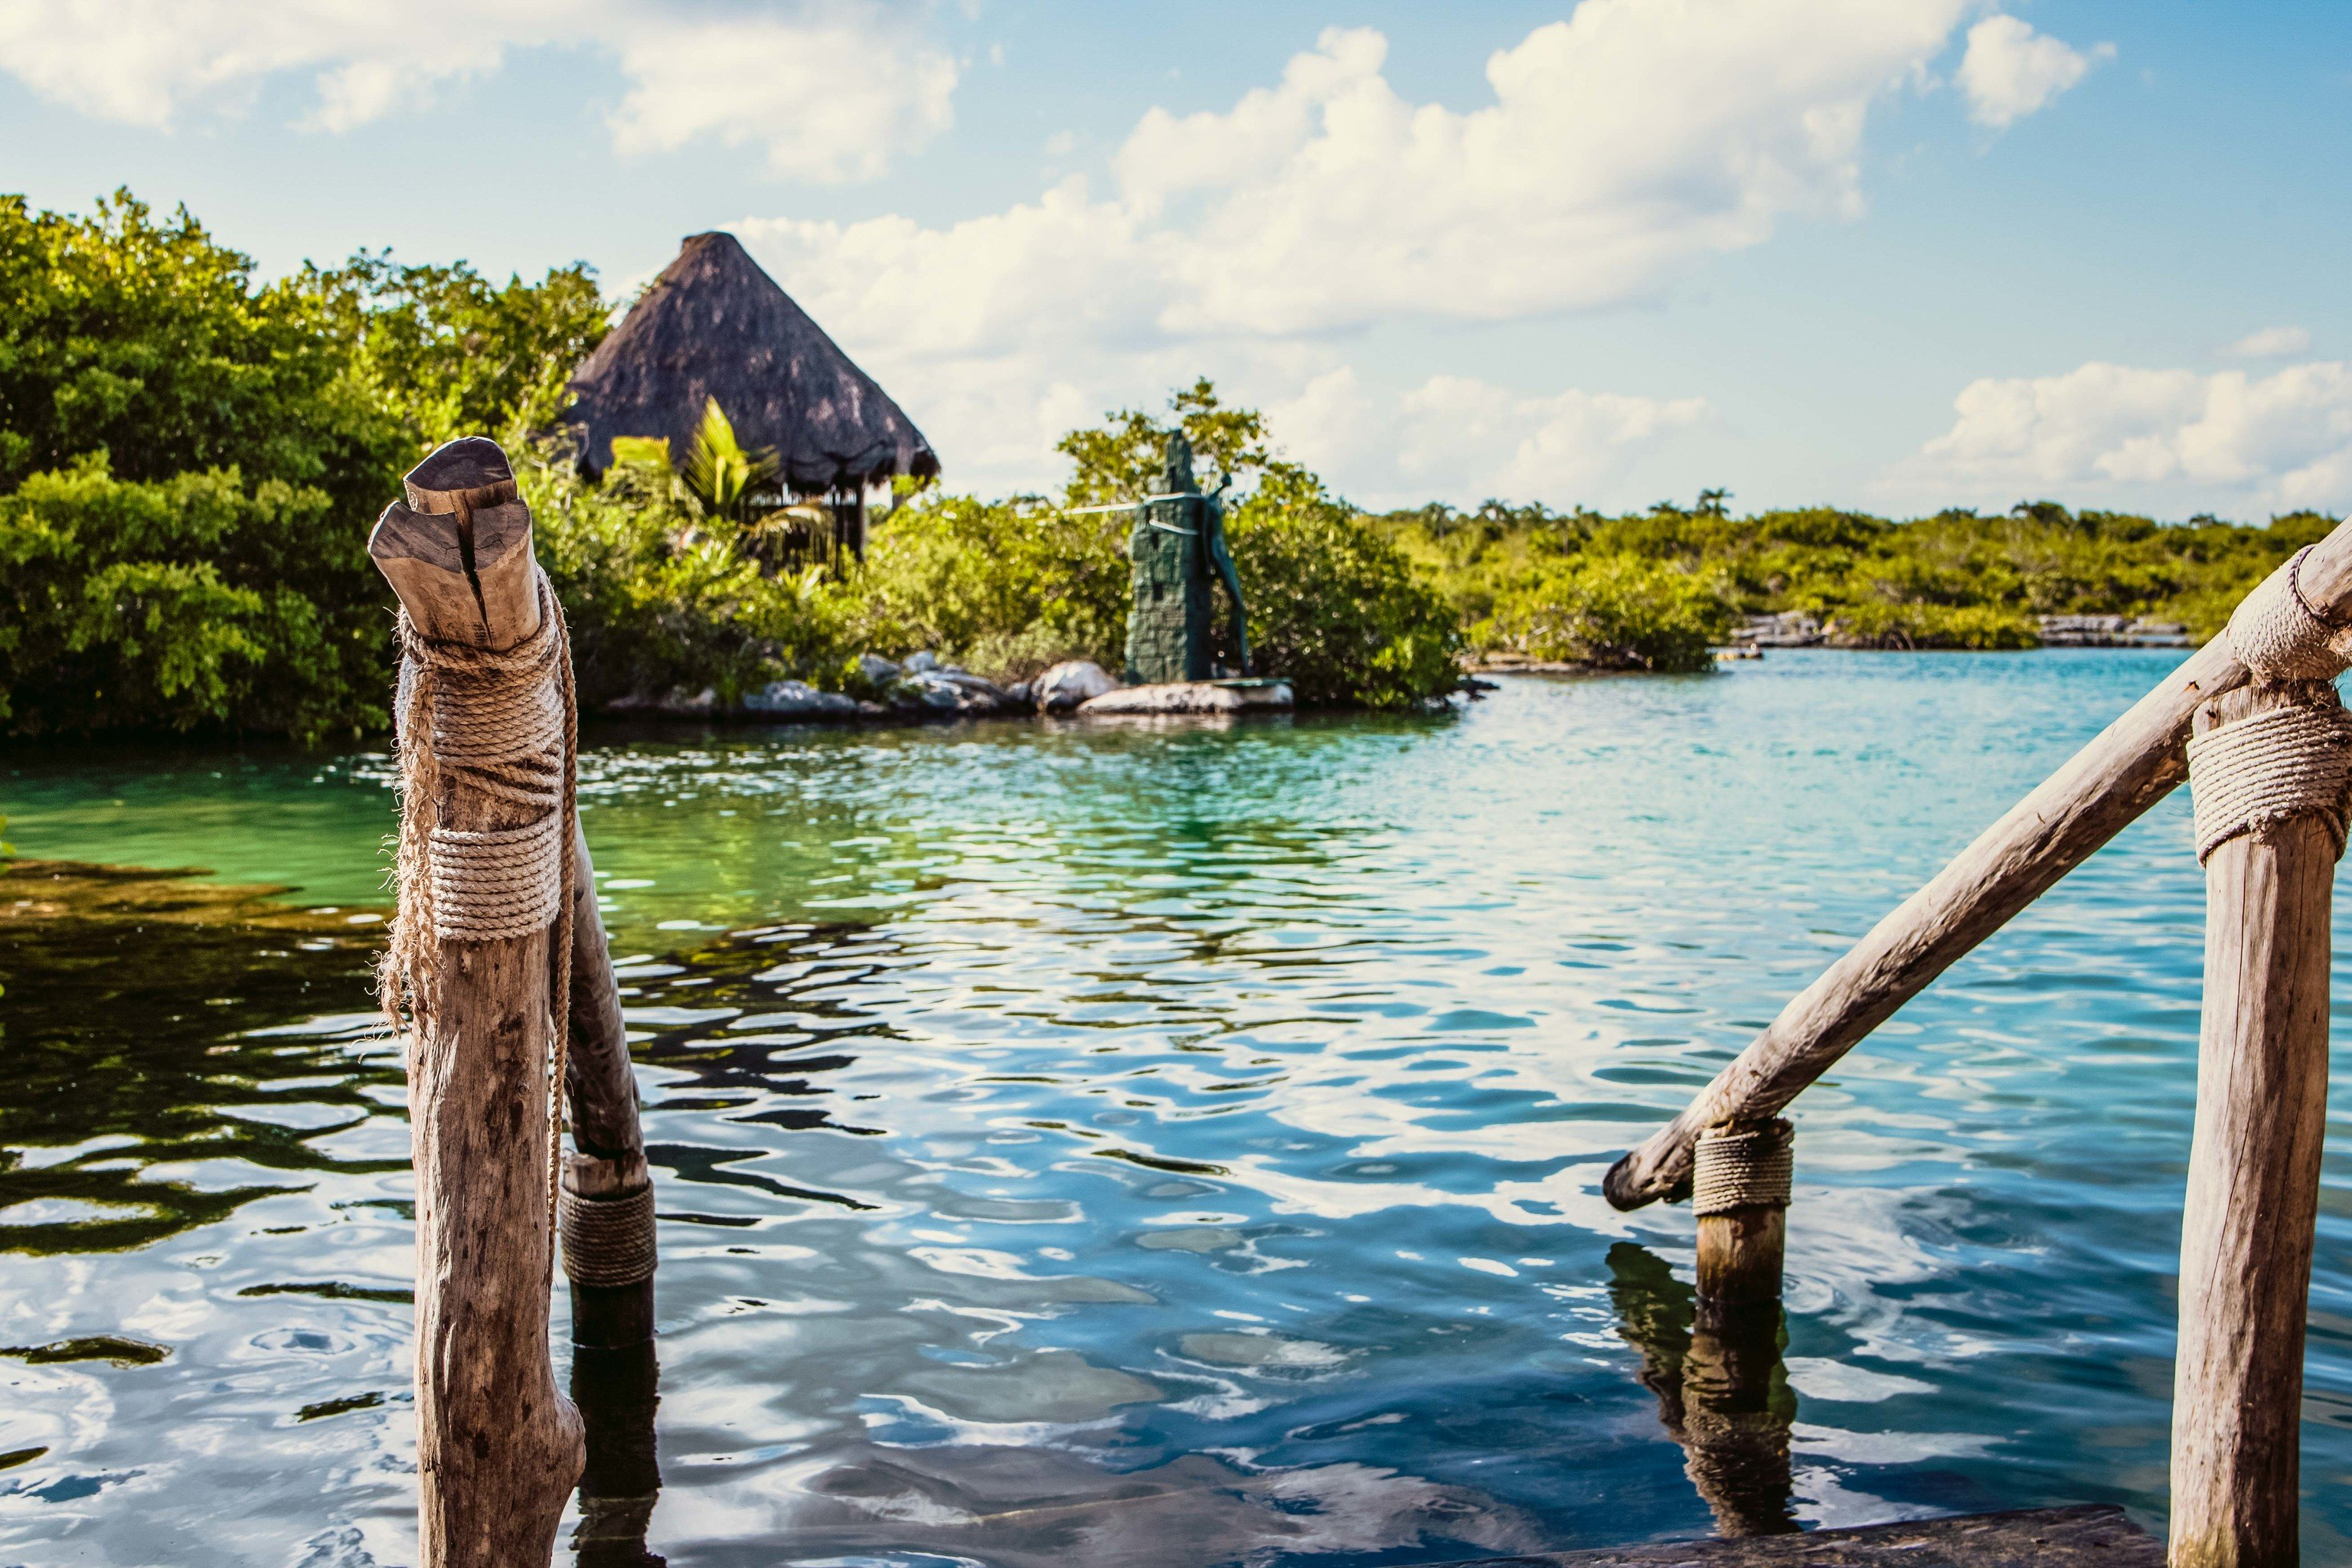 Mexico Trip Ideas Weekend Getaways water reflection Sea tree Lake sky water resources tourism leisure Lagoon landscape Ocean vacation River